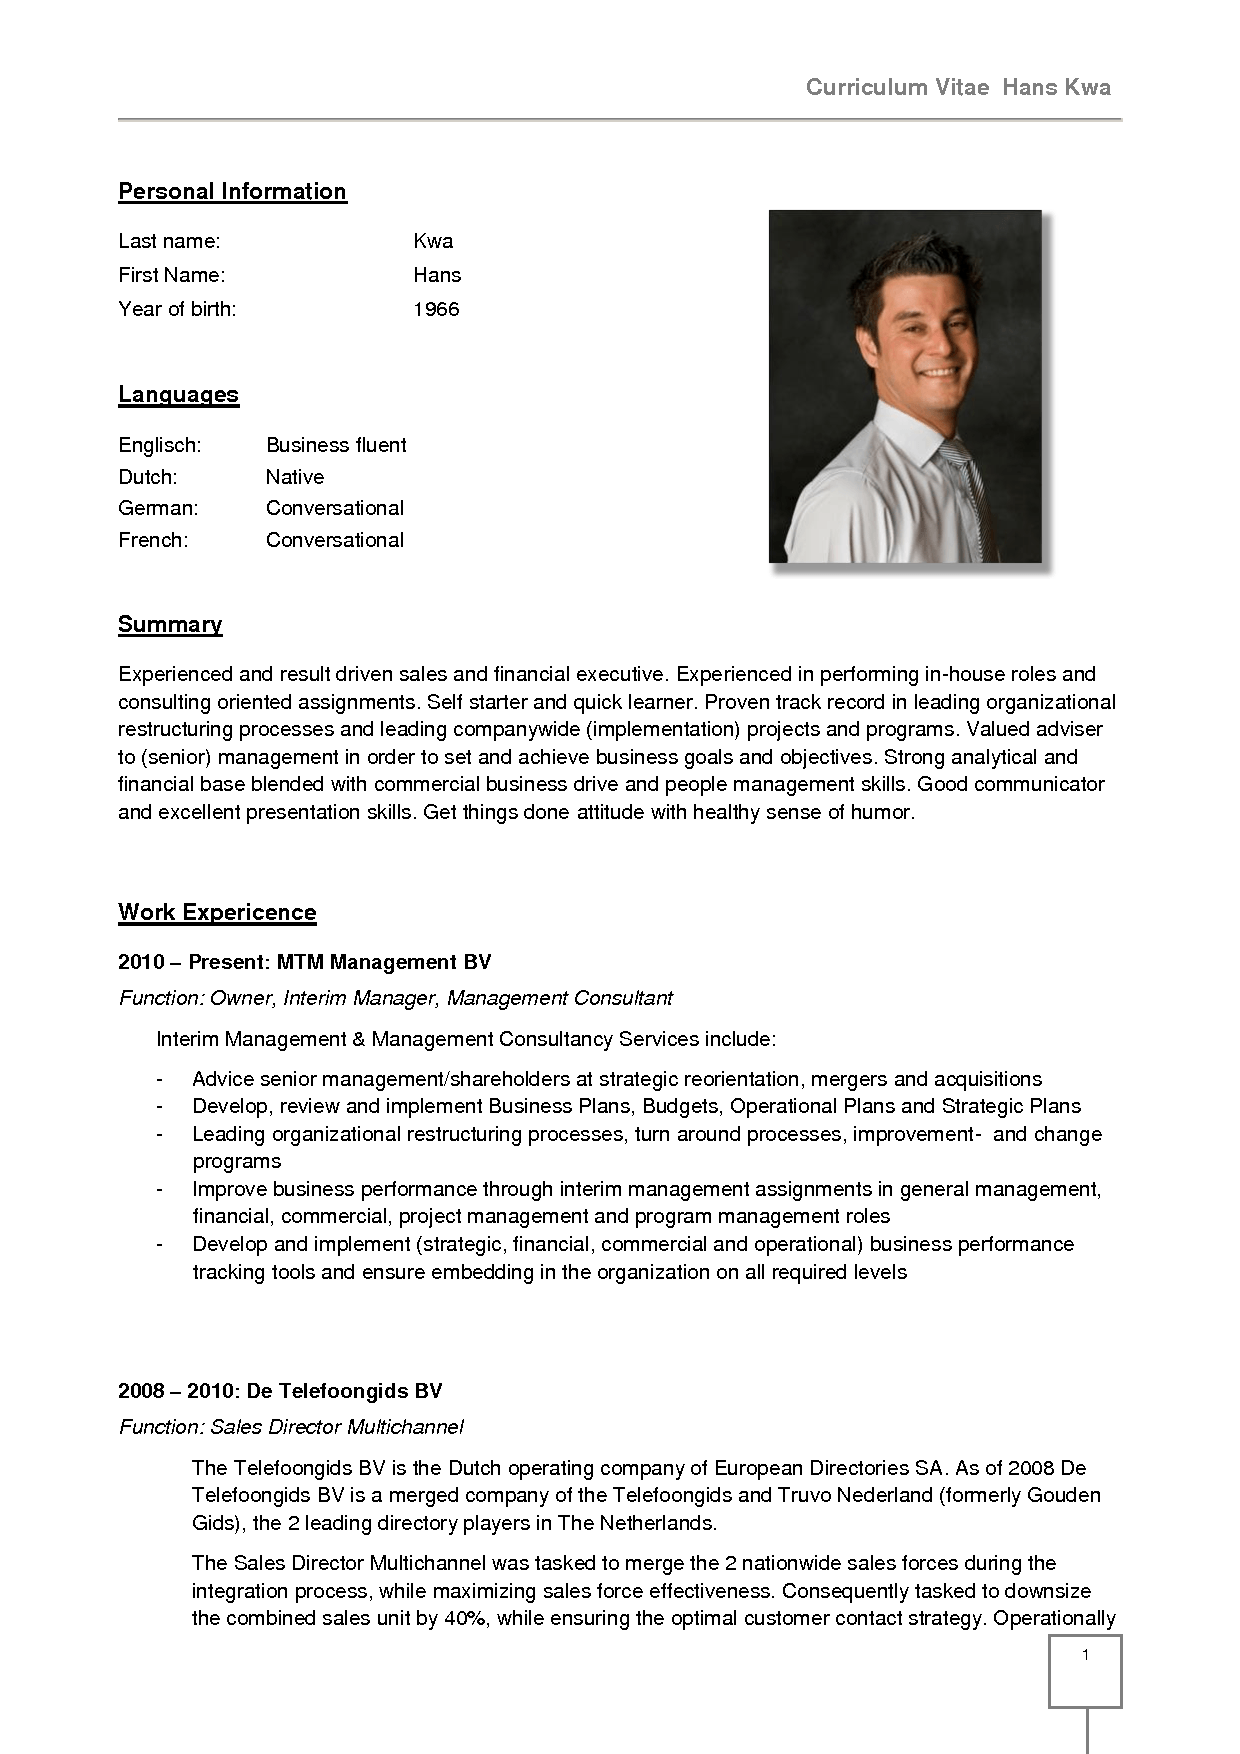 German Cv Template Doc calendar doc | Download | Resume format, Cv ...